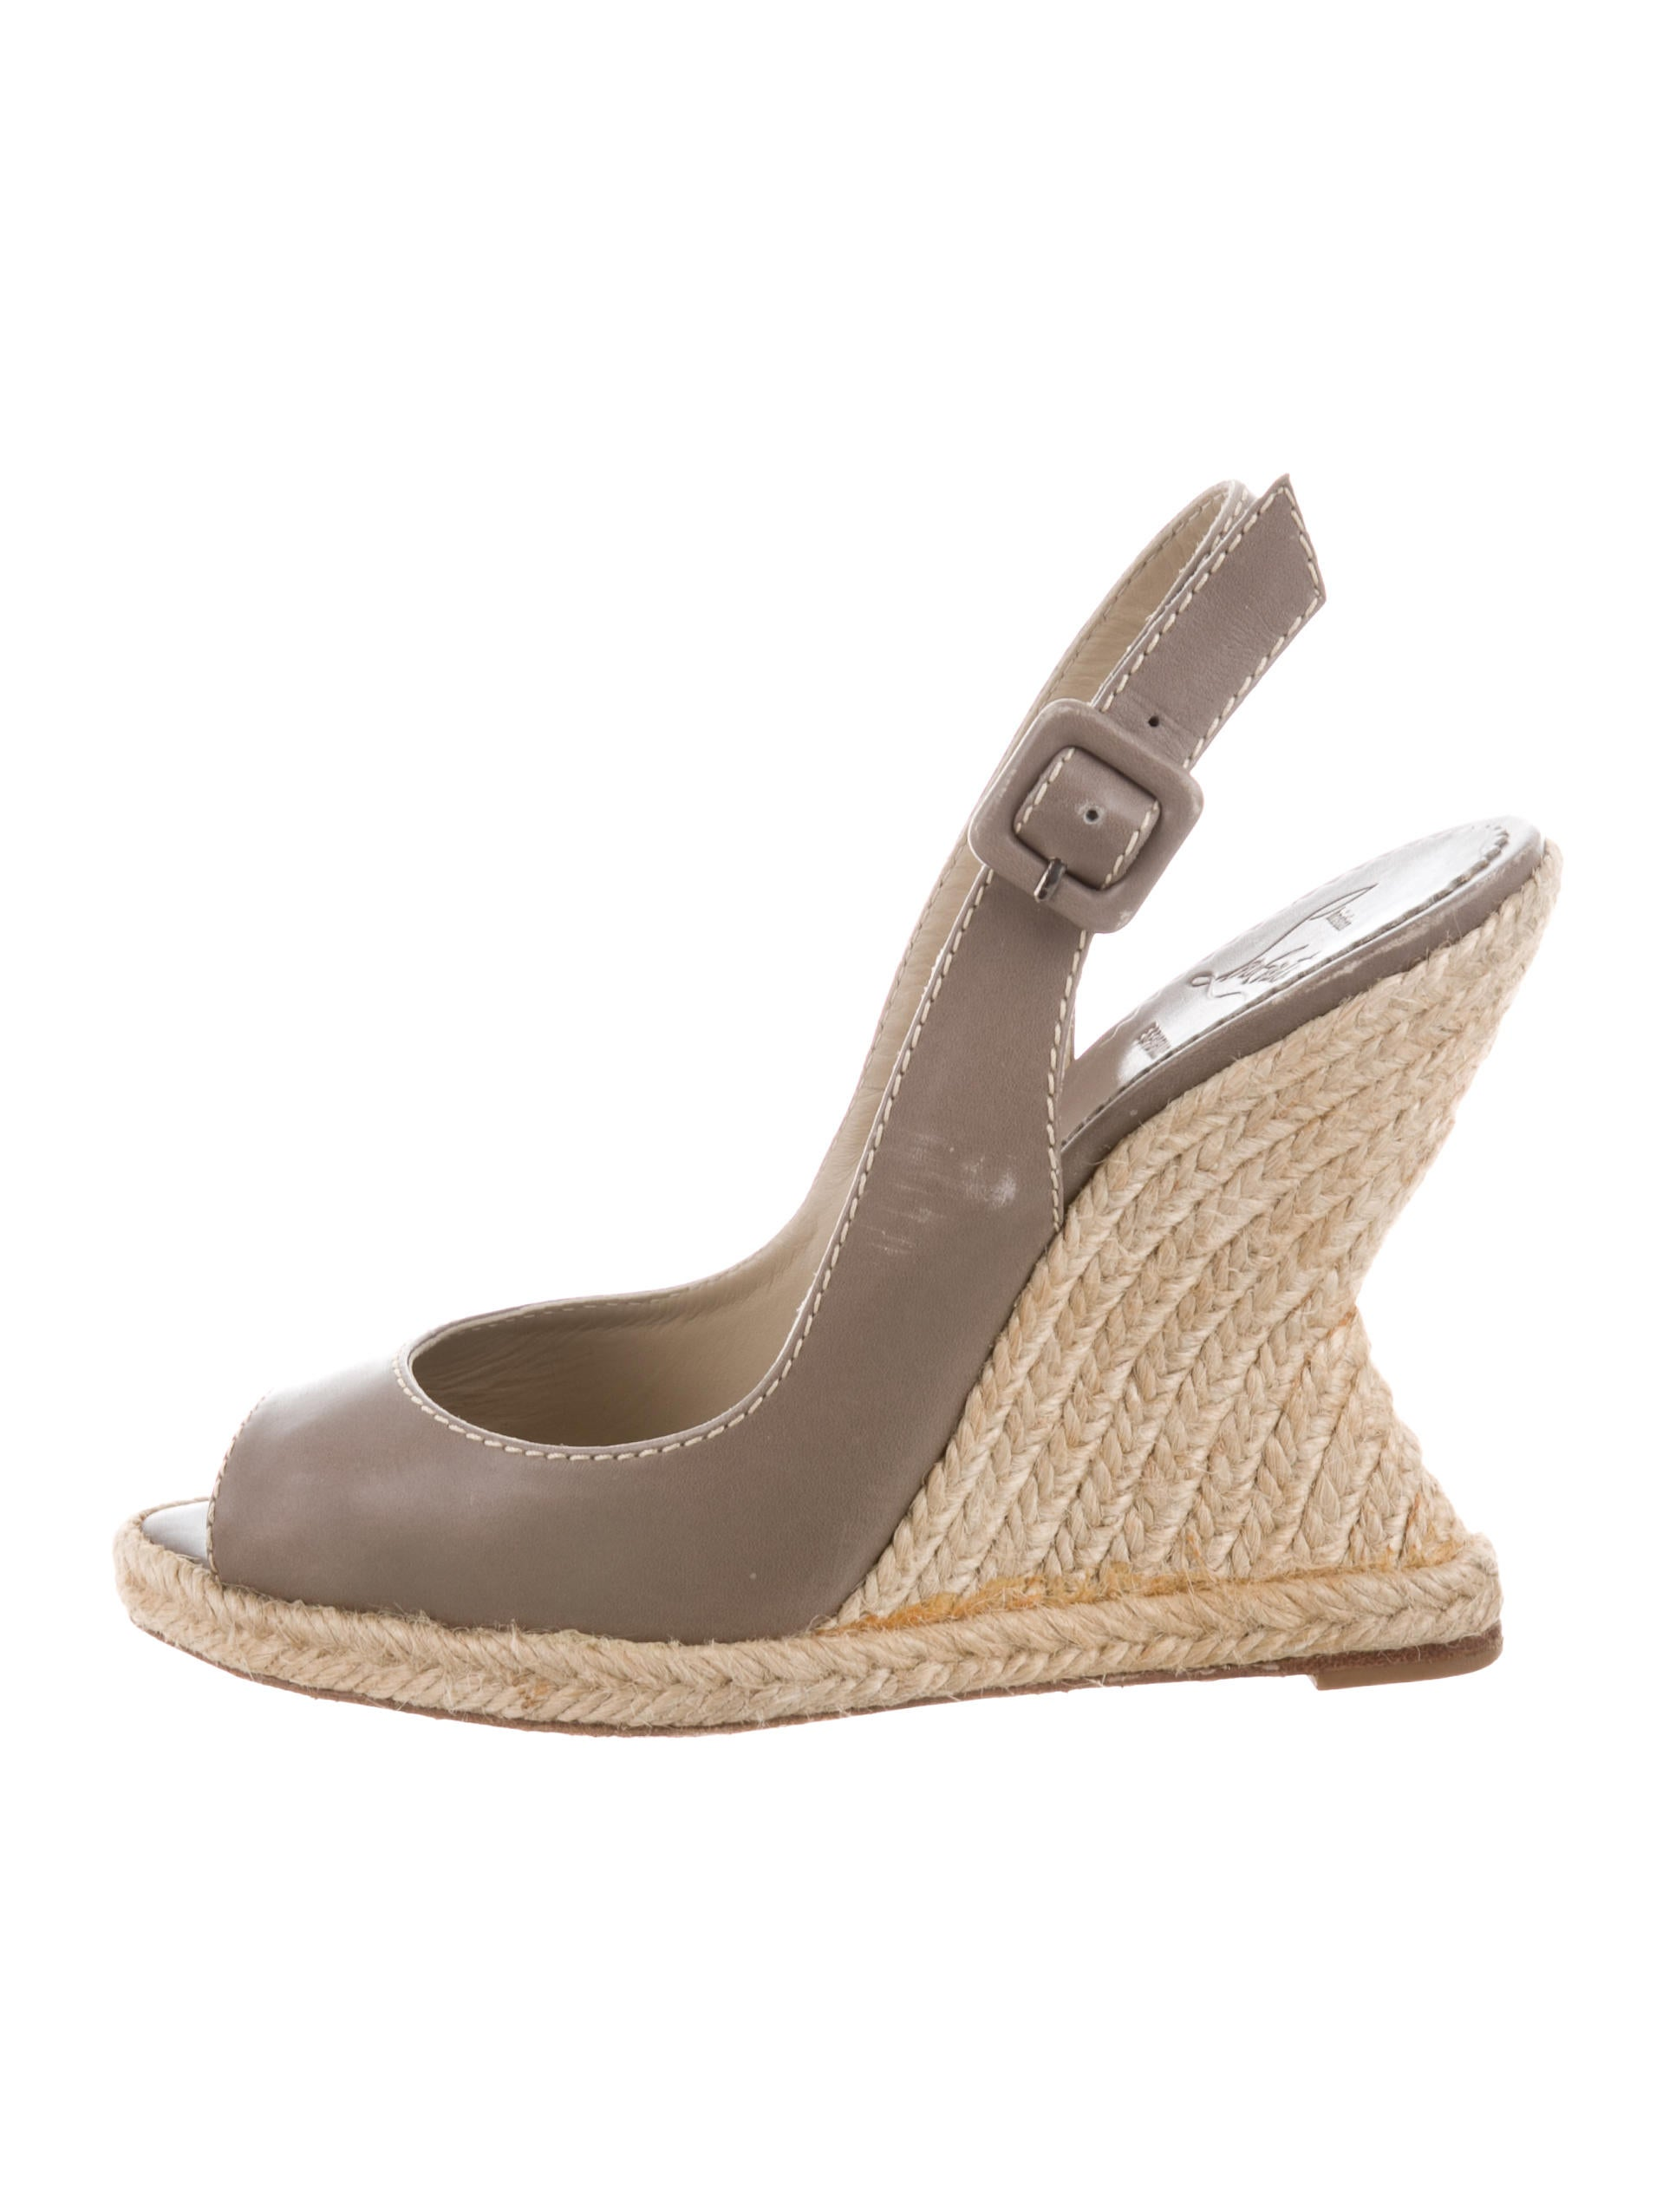 outlet countdown package Christian Louboutin You Love 120 Wedge Sandals outlet 100% original countdown package cheap online sale shopping online brand new unisex sale online TXvQyDoRX